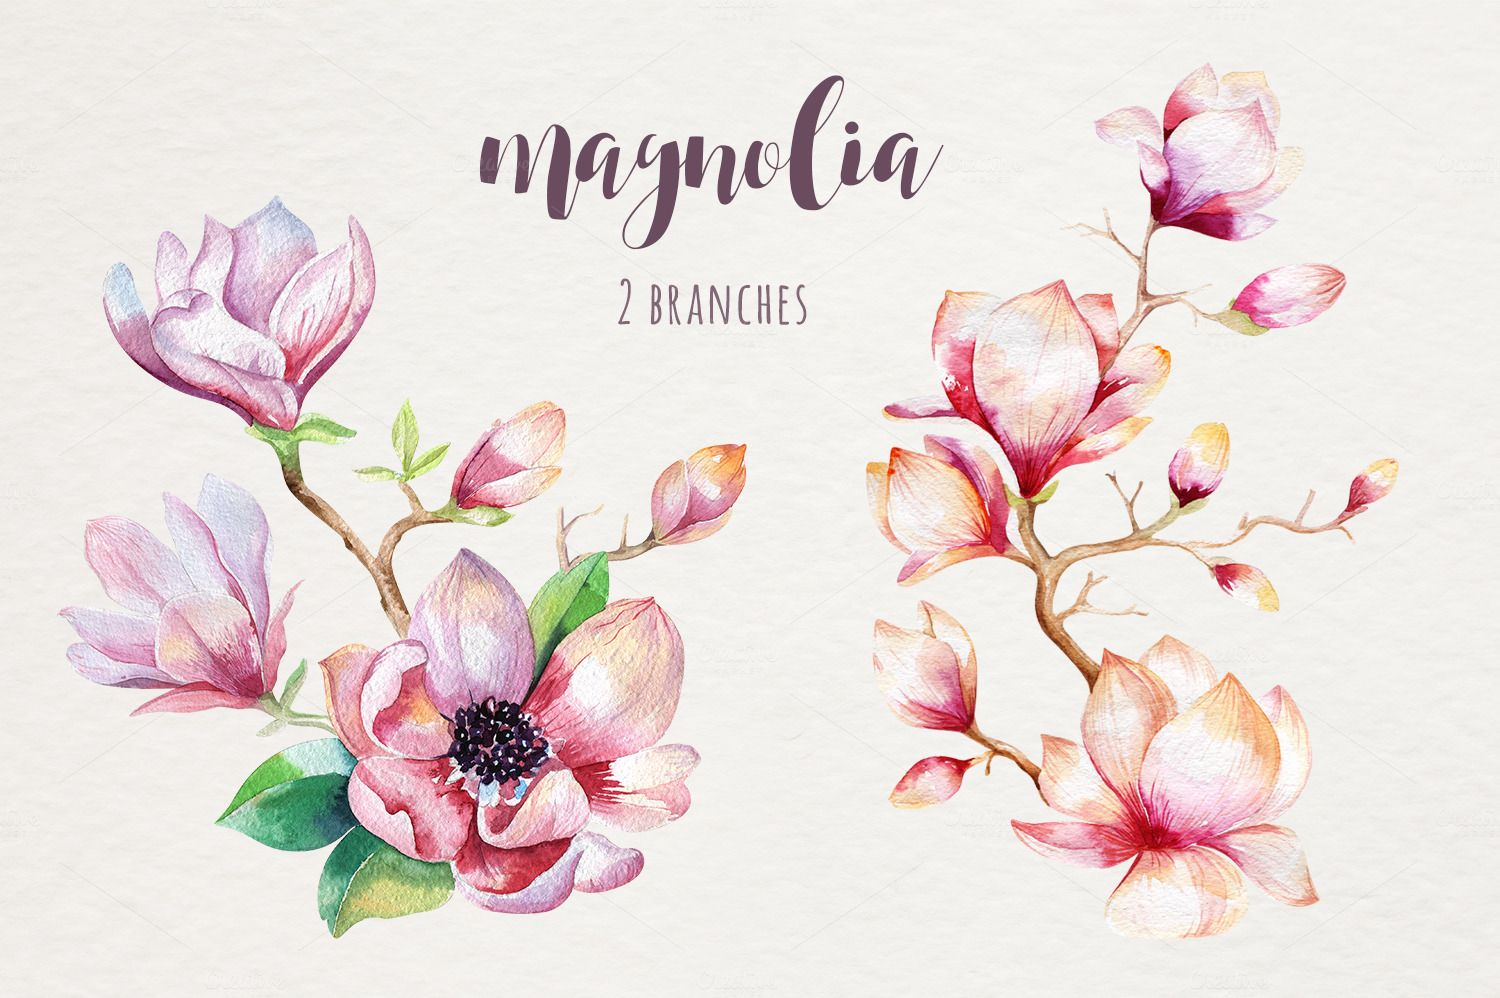 Watercolour Magnolia Flower Drawing Draw Flowers Watercolor Magnolia Flower